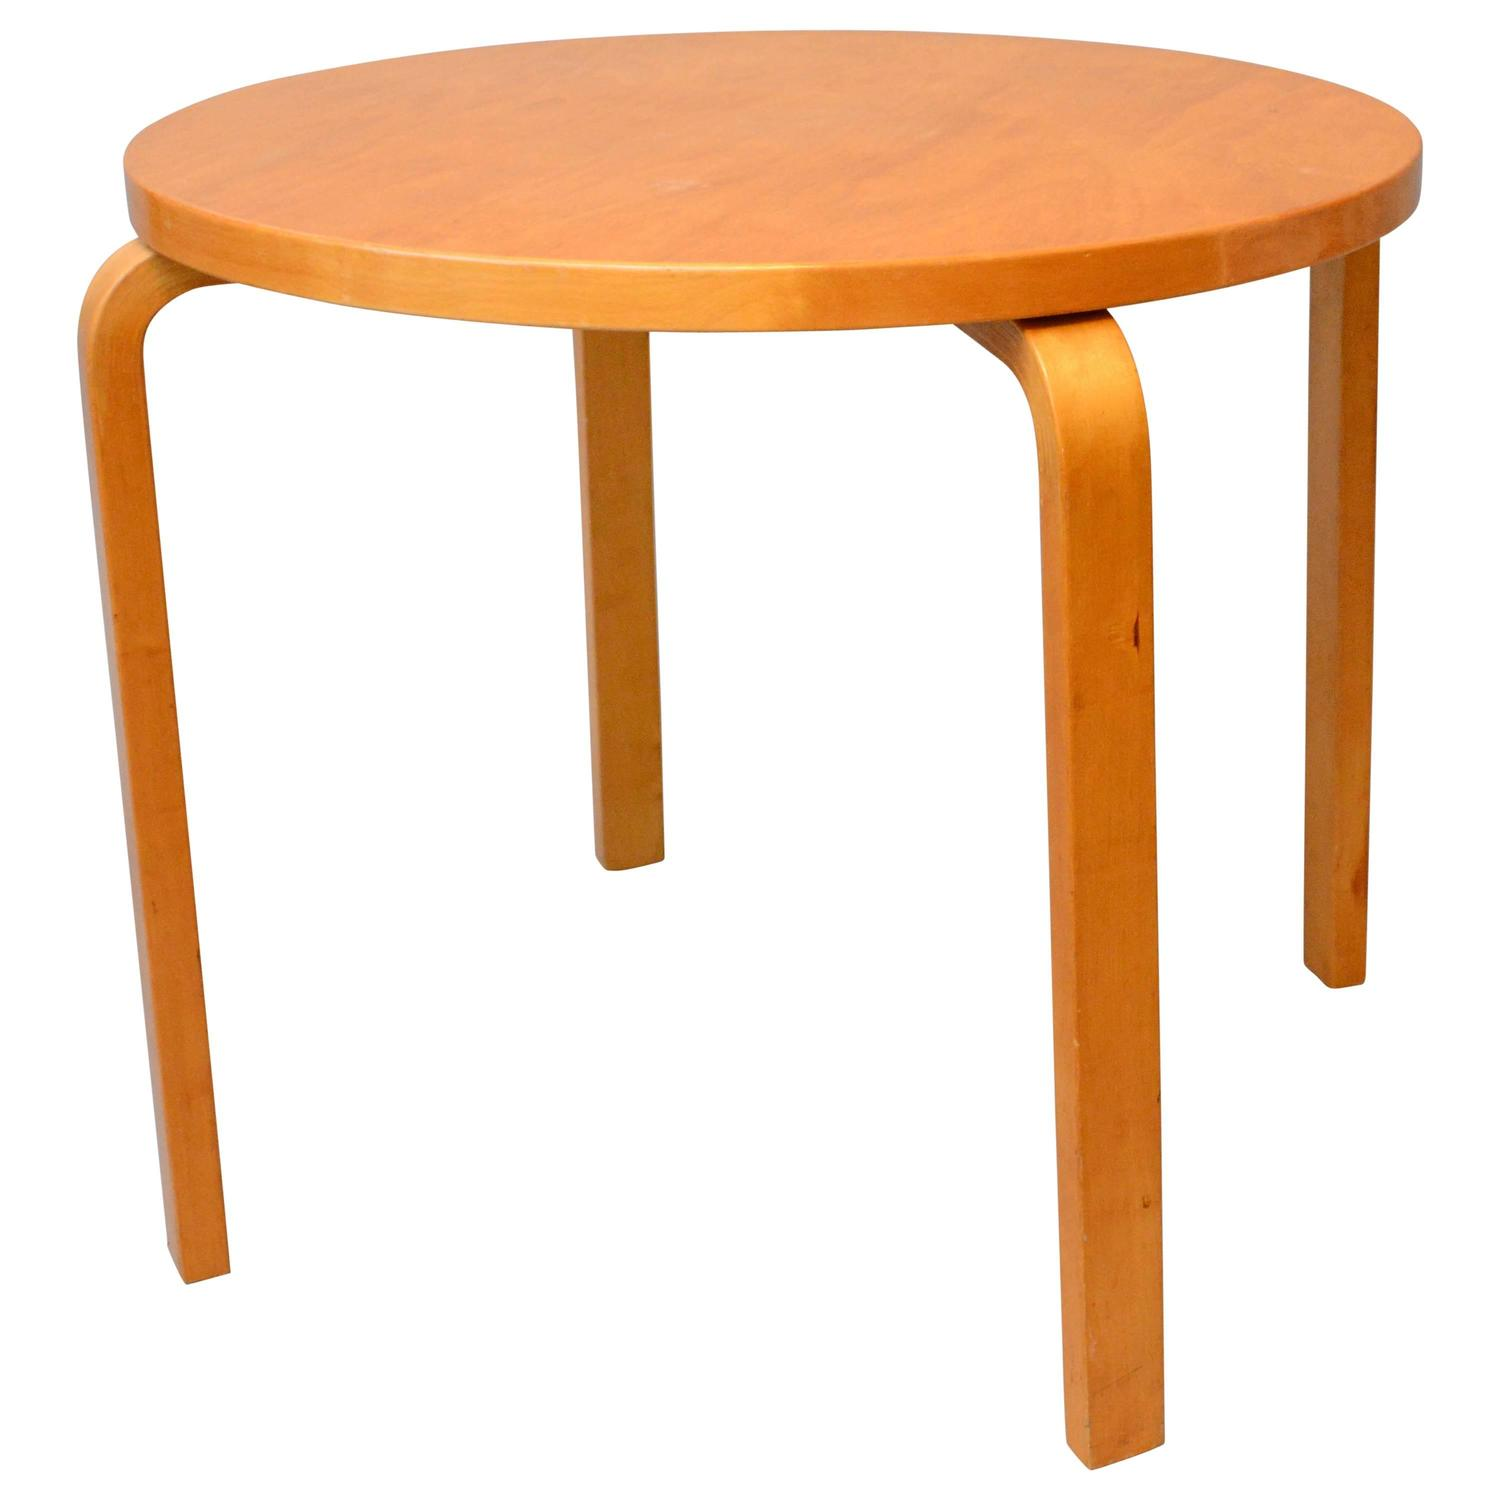 Round Table A70 by Alvar Aalto for Artek Finland 1930s 1940s For